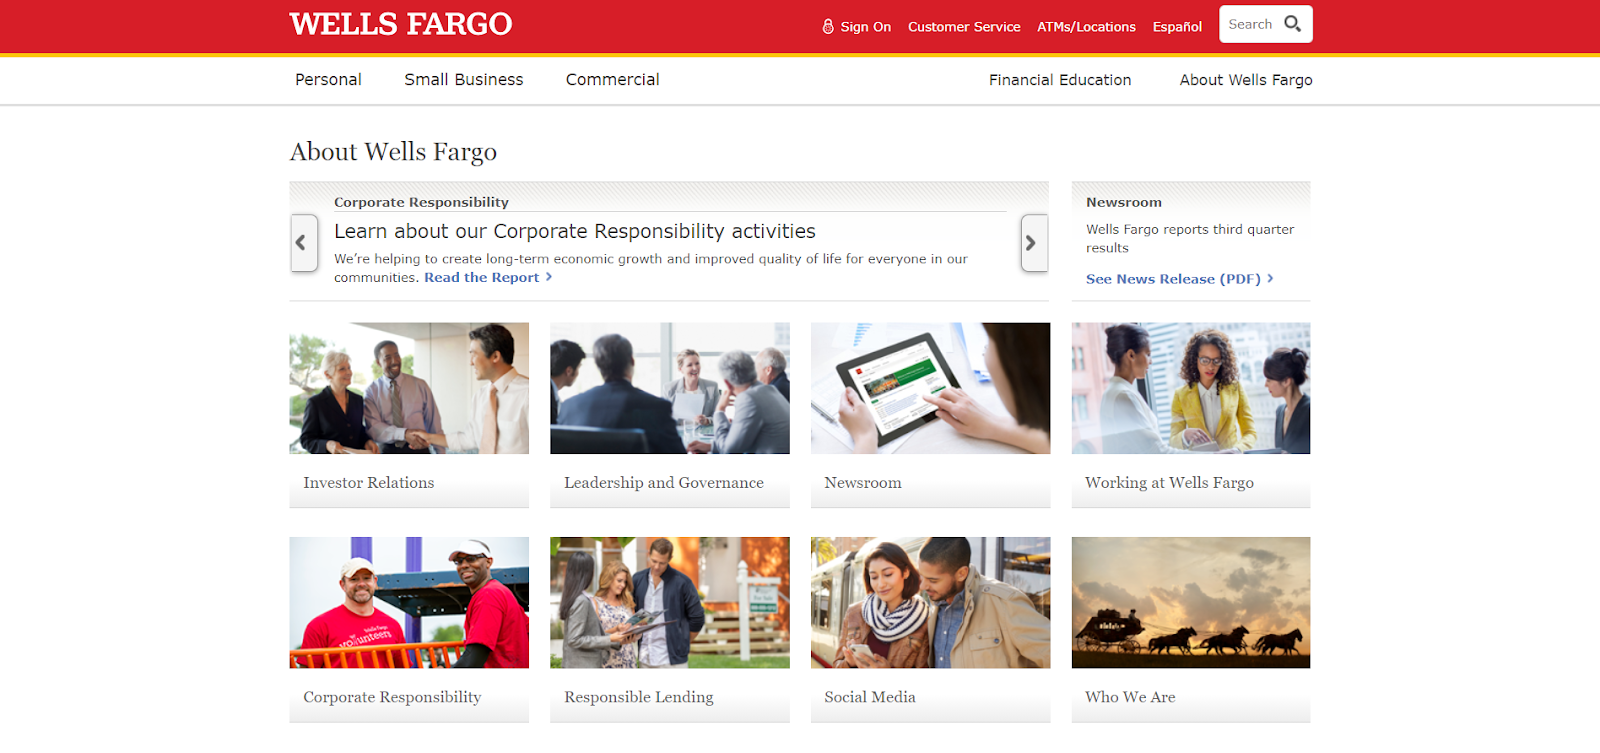 Wellsfargodealerservices.com/login